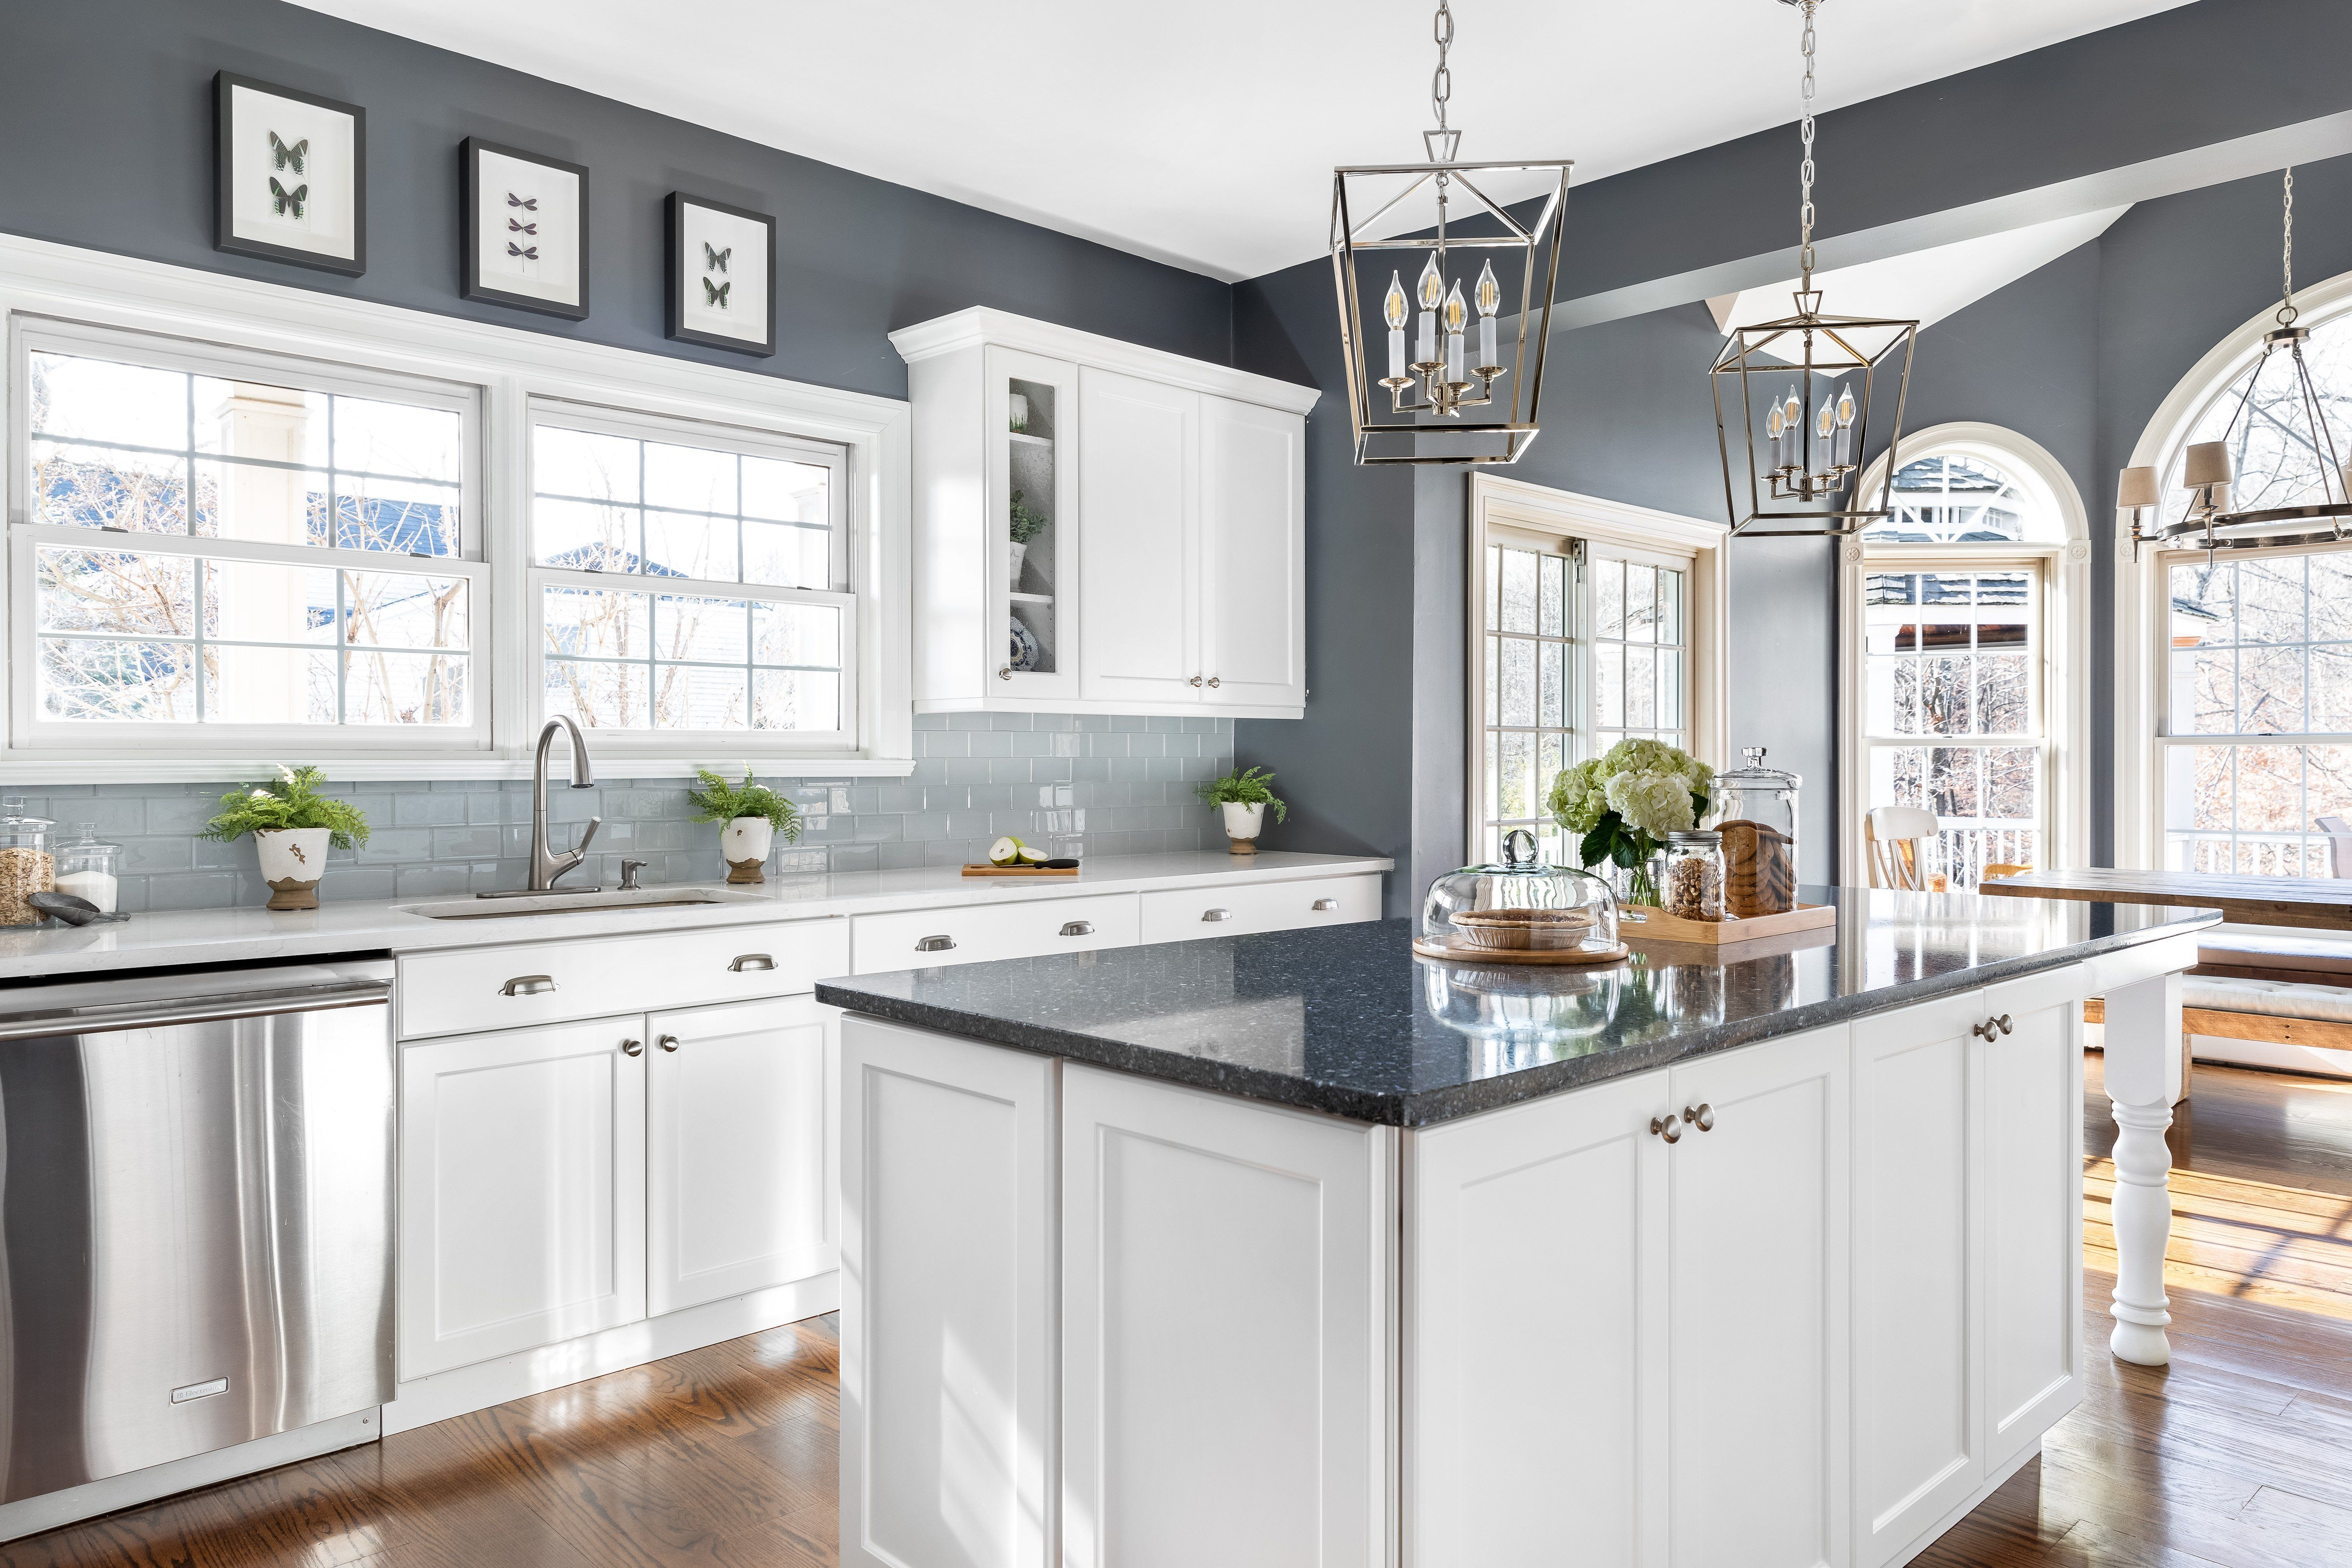 How To Match Your Countertops Cabinets And Floors In 2020 Kitchen Cabinets Color Combination White Kitchen Remodeling Kitchen Cabinets And Countertops